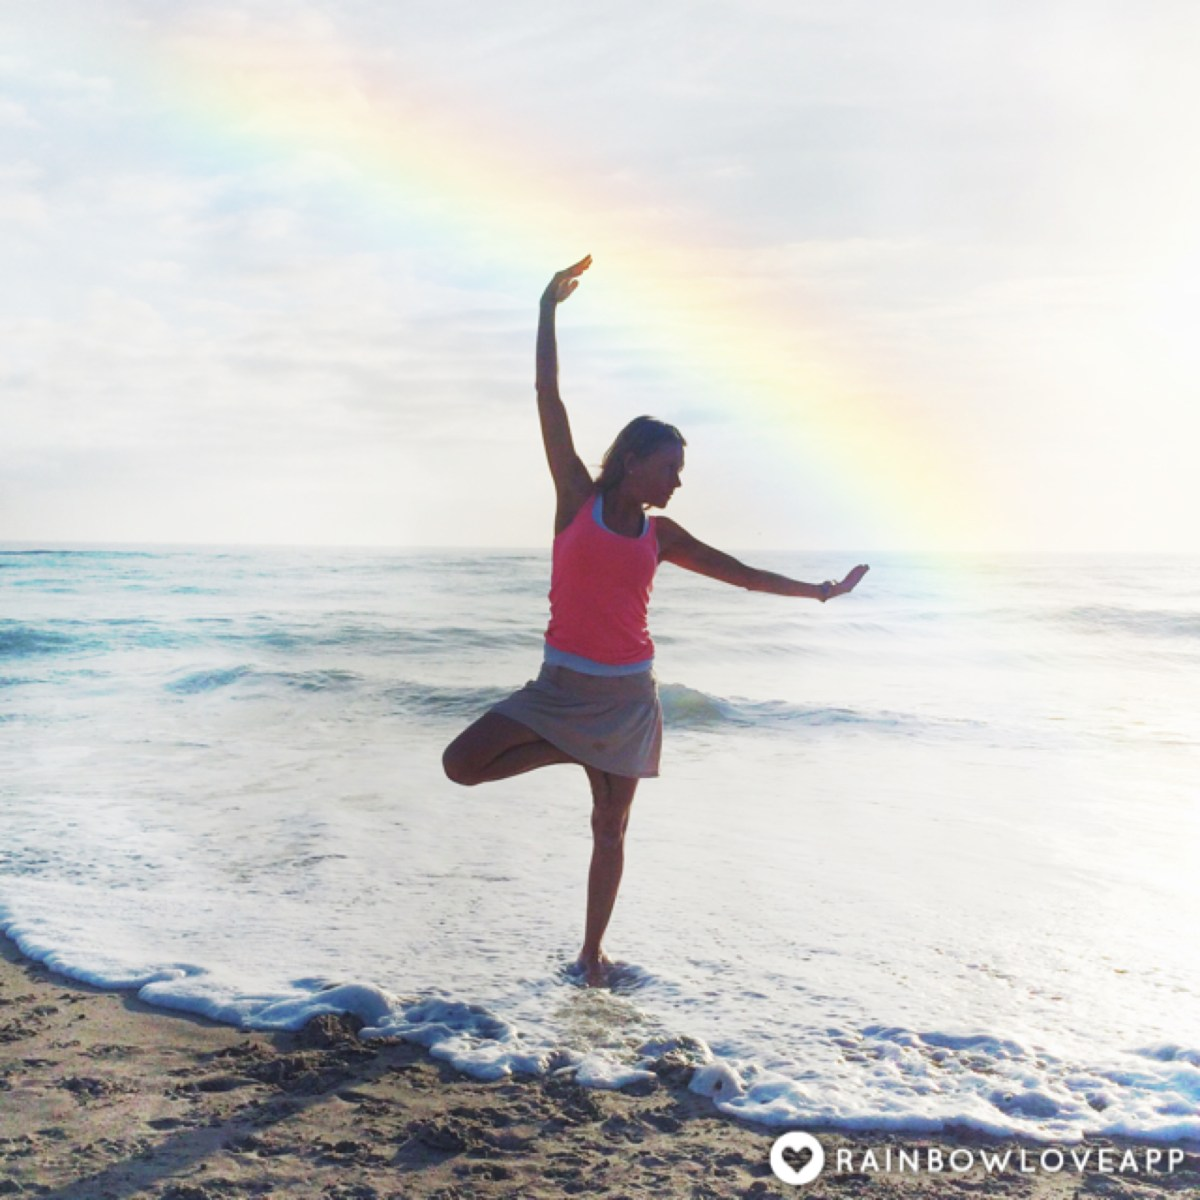 Photo-Editing-Hacks-For-Adding-Real-Looking-Rainbows-To-Your-Photos-Rainbow-Love-App-Rainbow-Filter-19-1